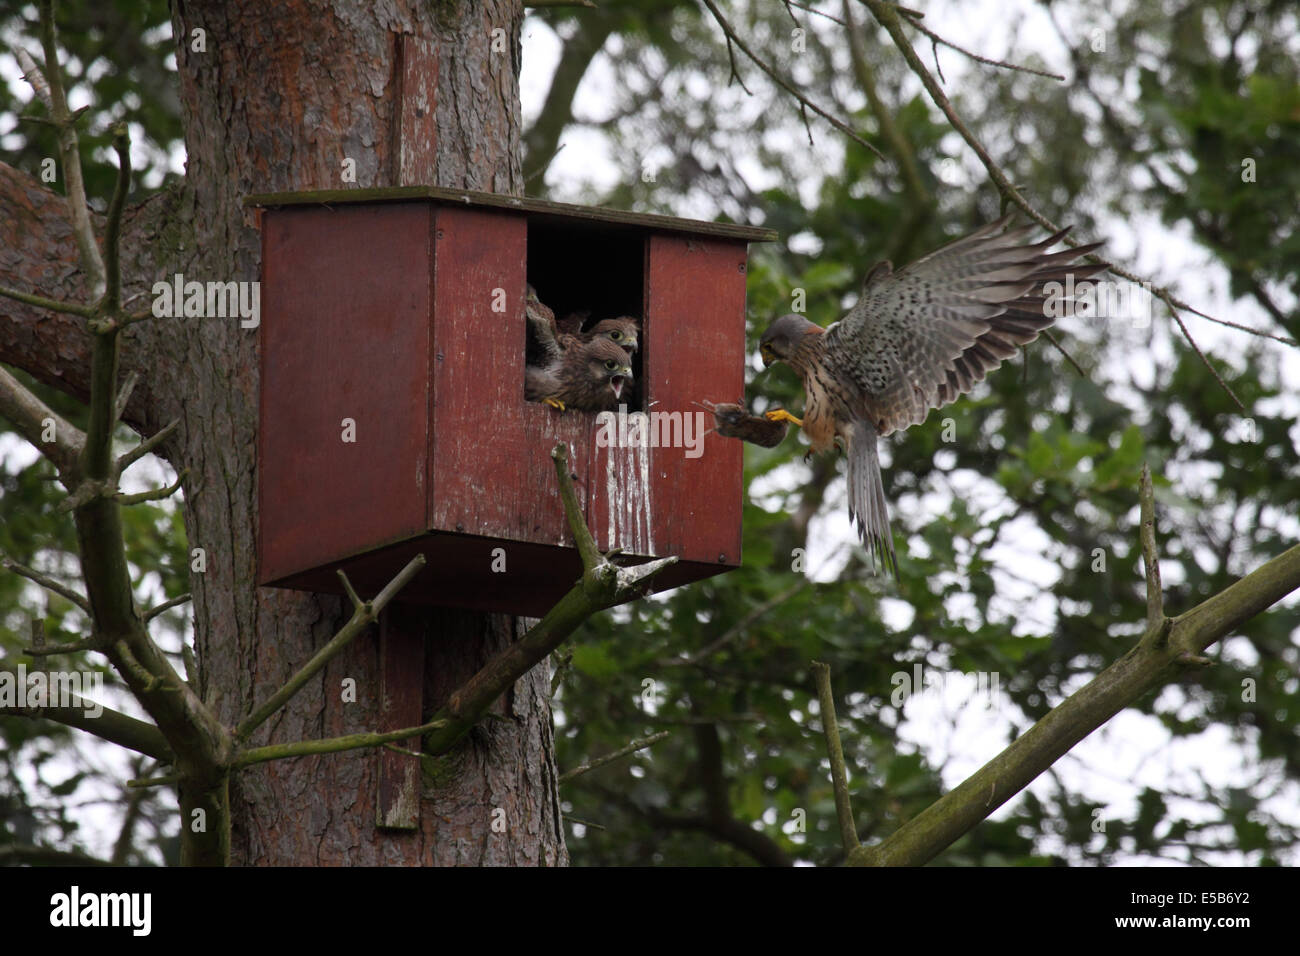 Kestrel male flying in to nestbox with Bank vole in woodland in Northern England - Stock Image